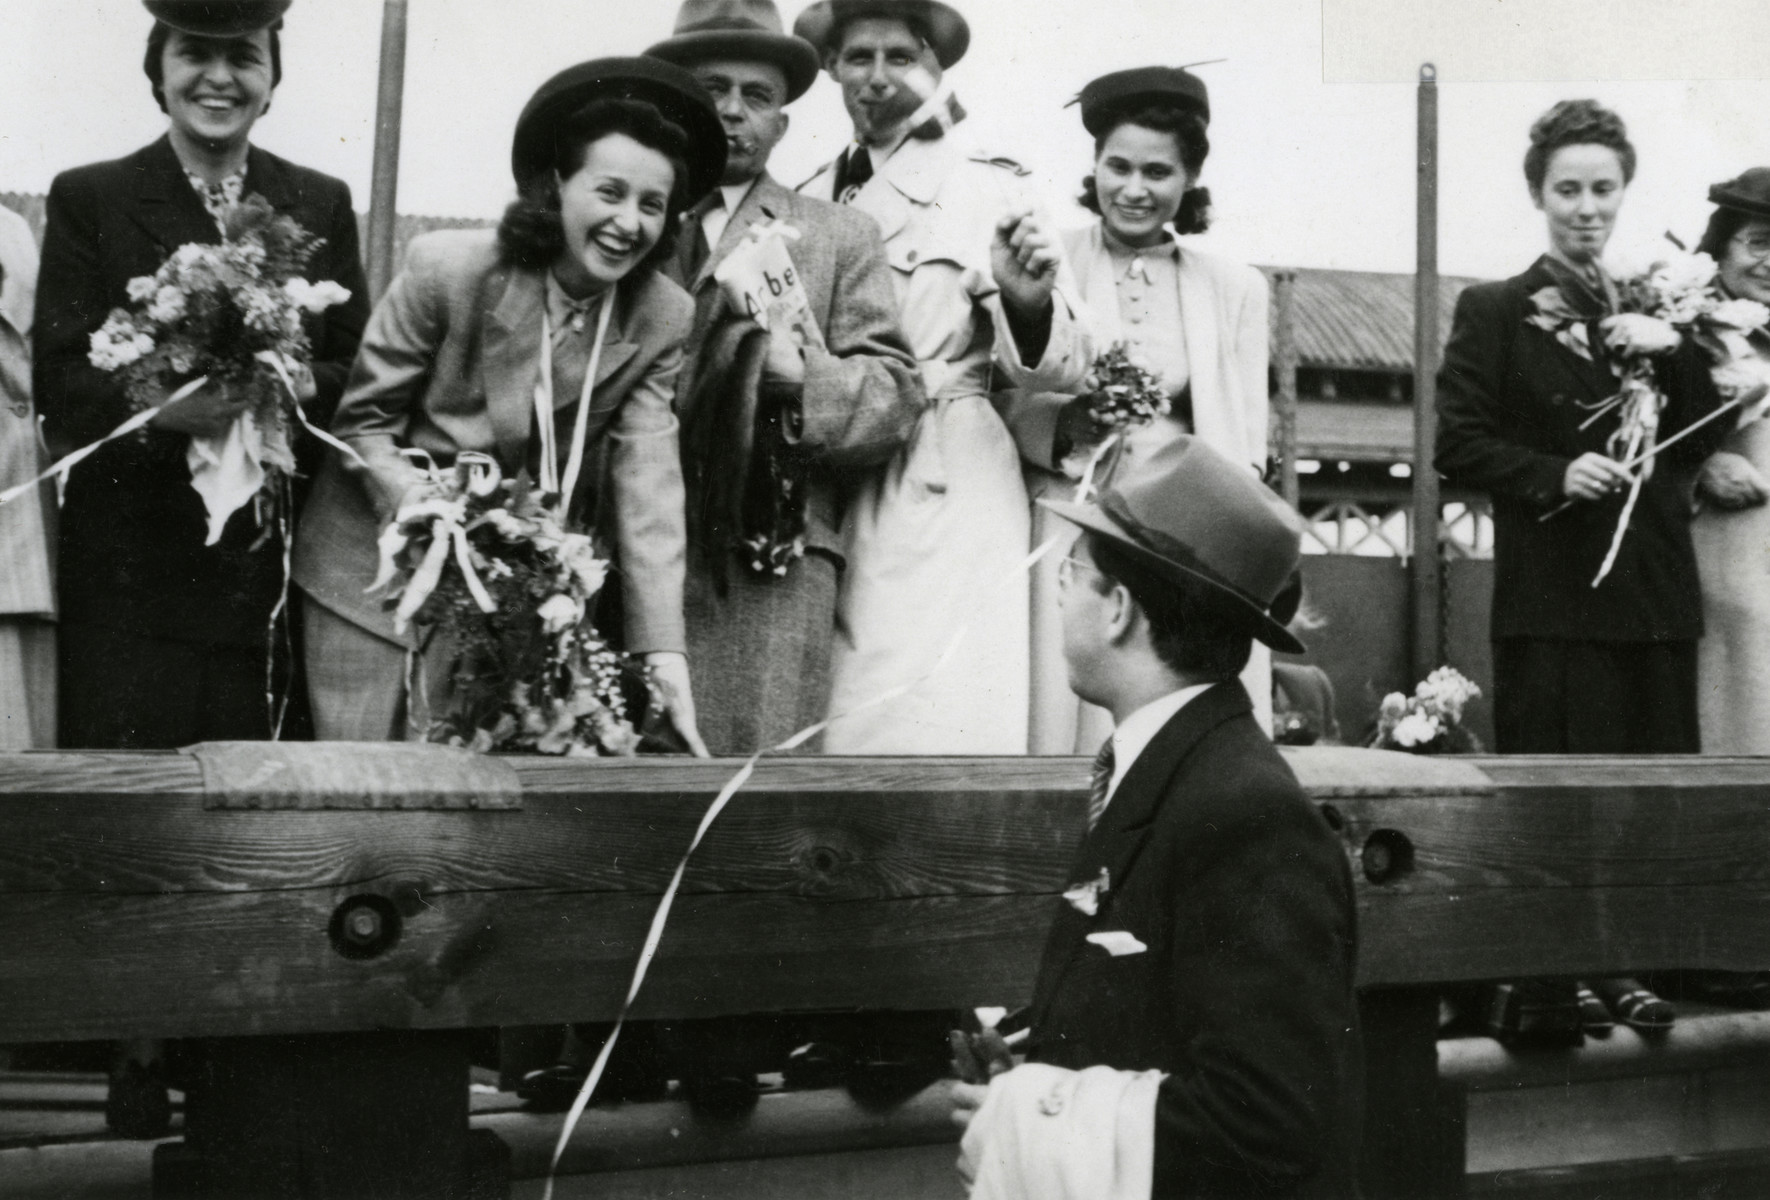 Idit Scheirmeister and Jeanne Levitan return to Denmark from Sweden with family members.